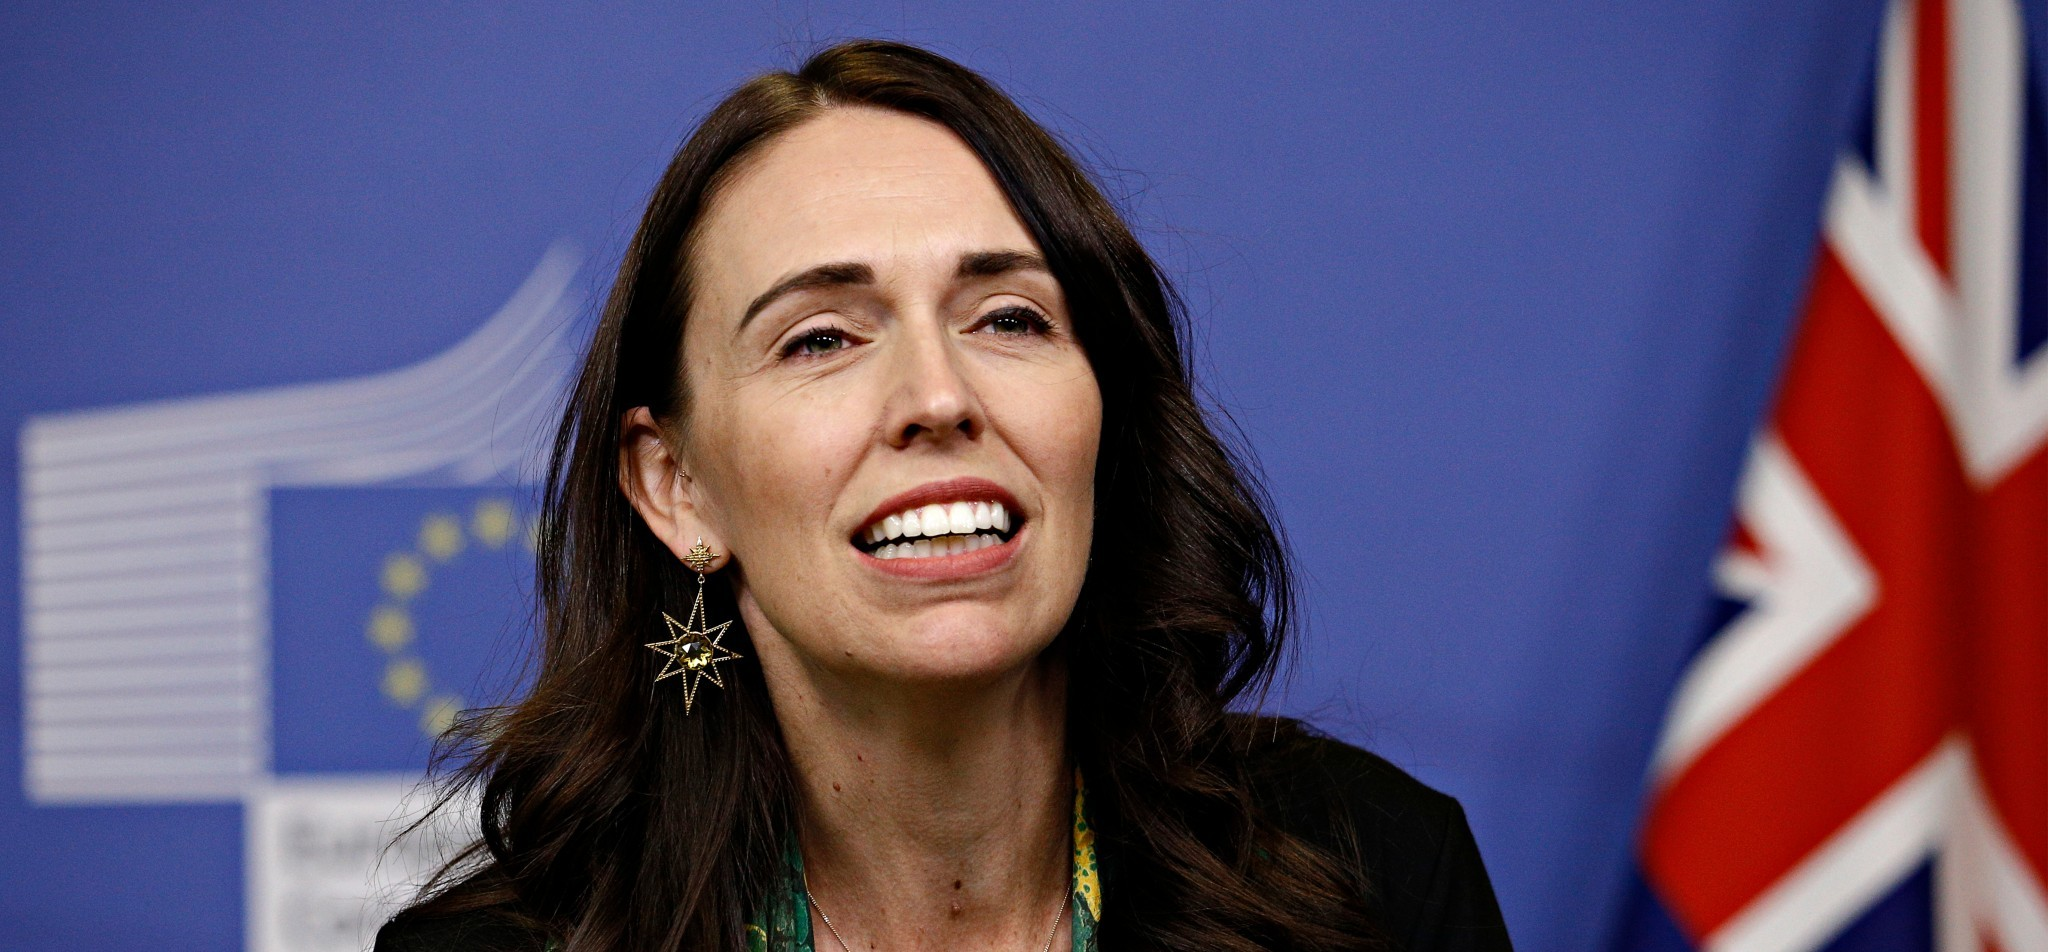 New Zealand Opens the Door to Joining AUKUS - The American Spectator   USA News and PoliticsThe American Spectator   USA News and Politics